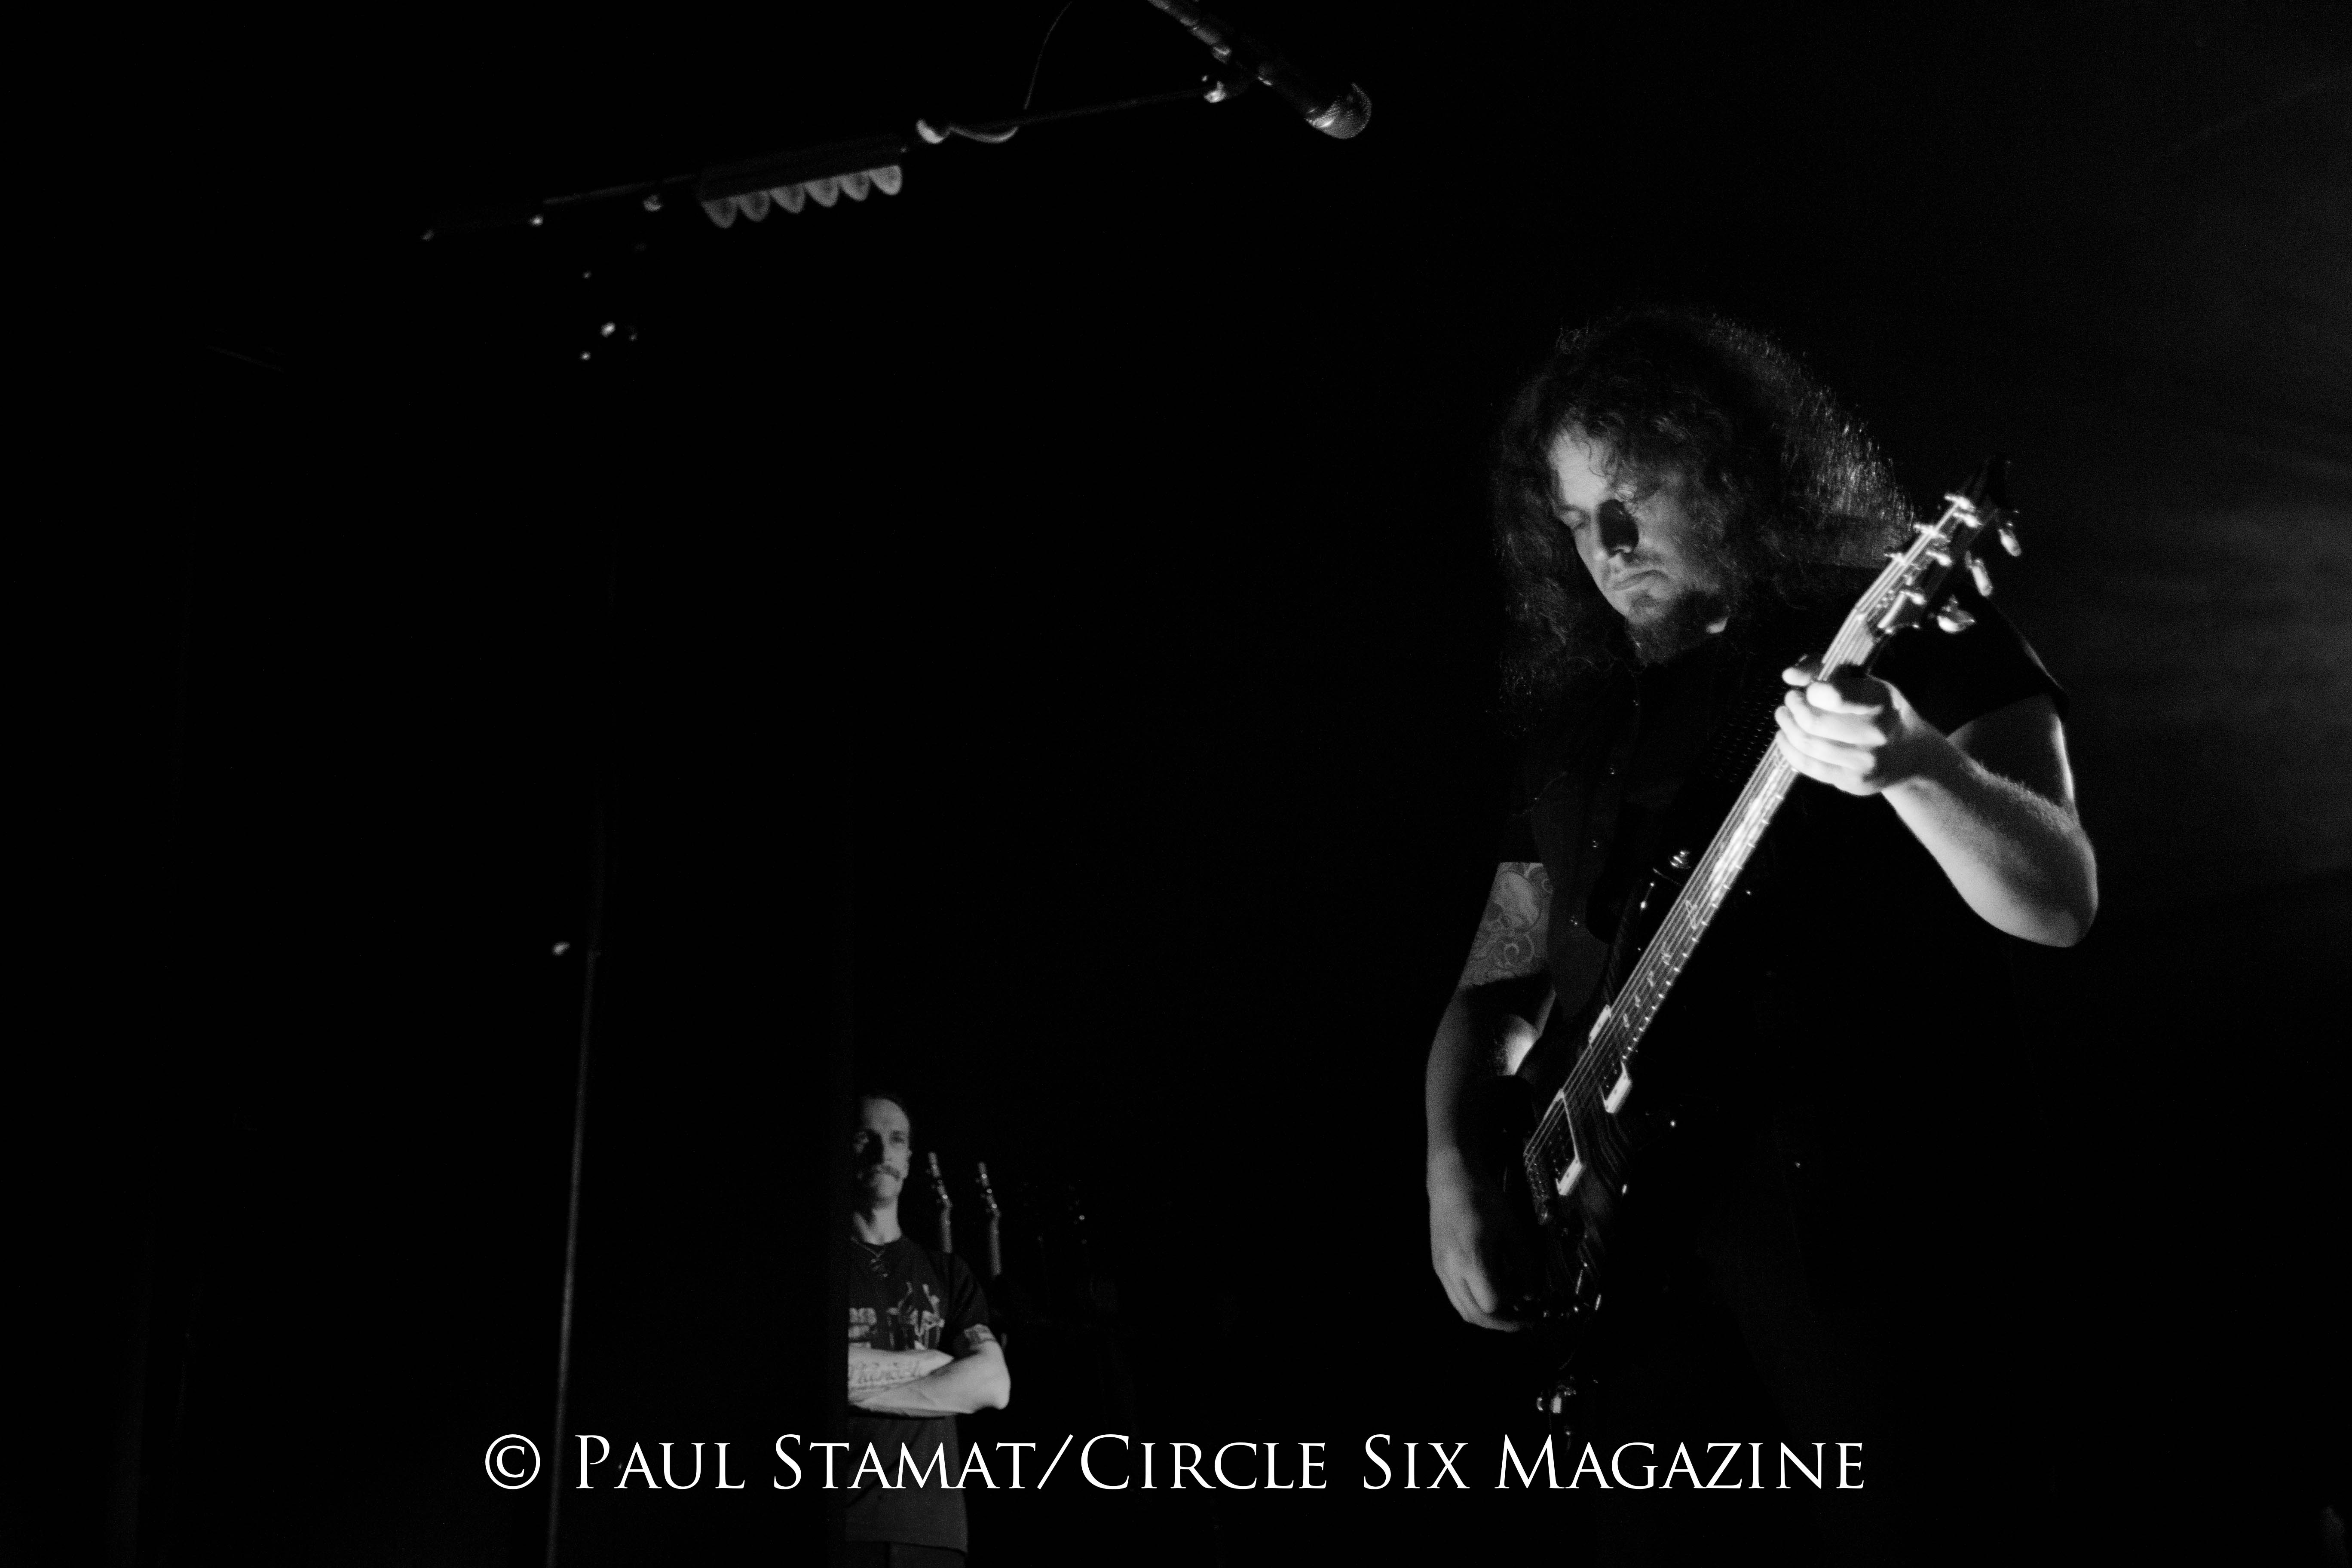 Opeth In Flames Show 2 (31 of 39)